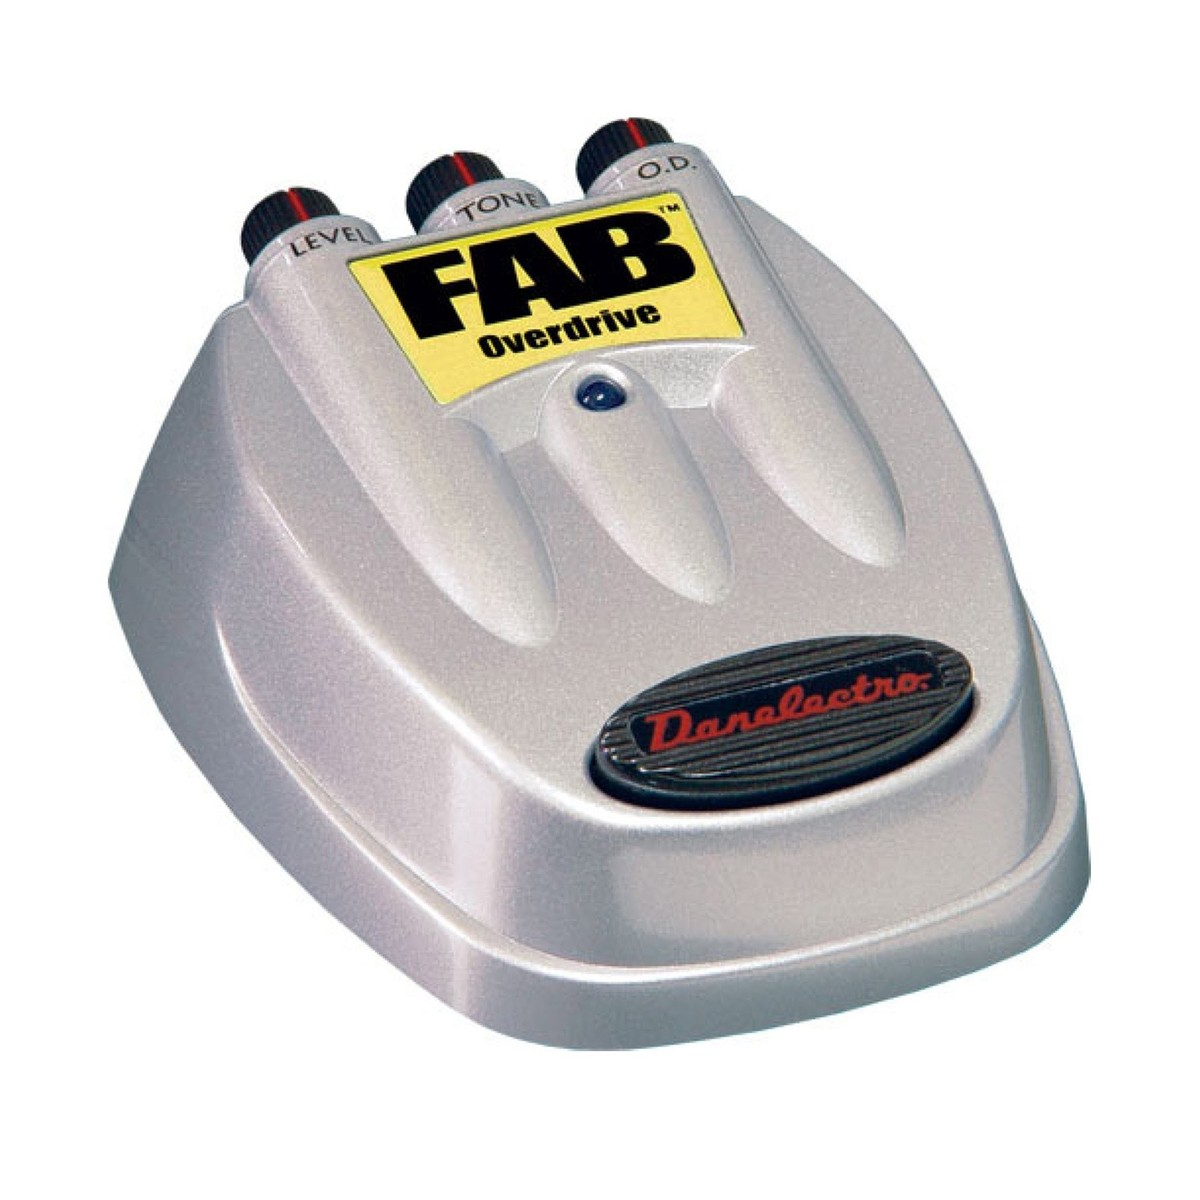 Image of Danelectro FAB Overdrive Pedal